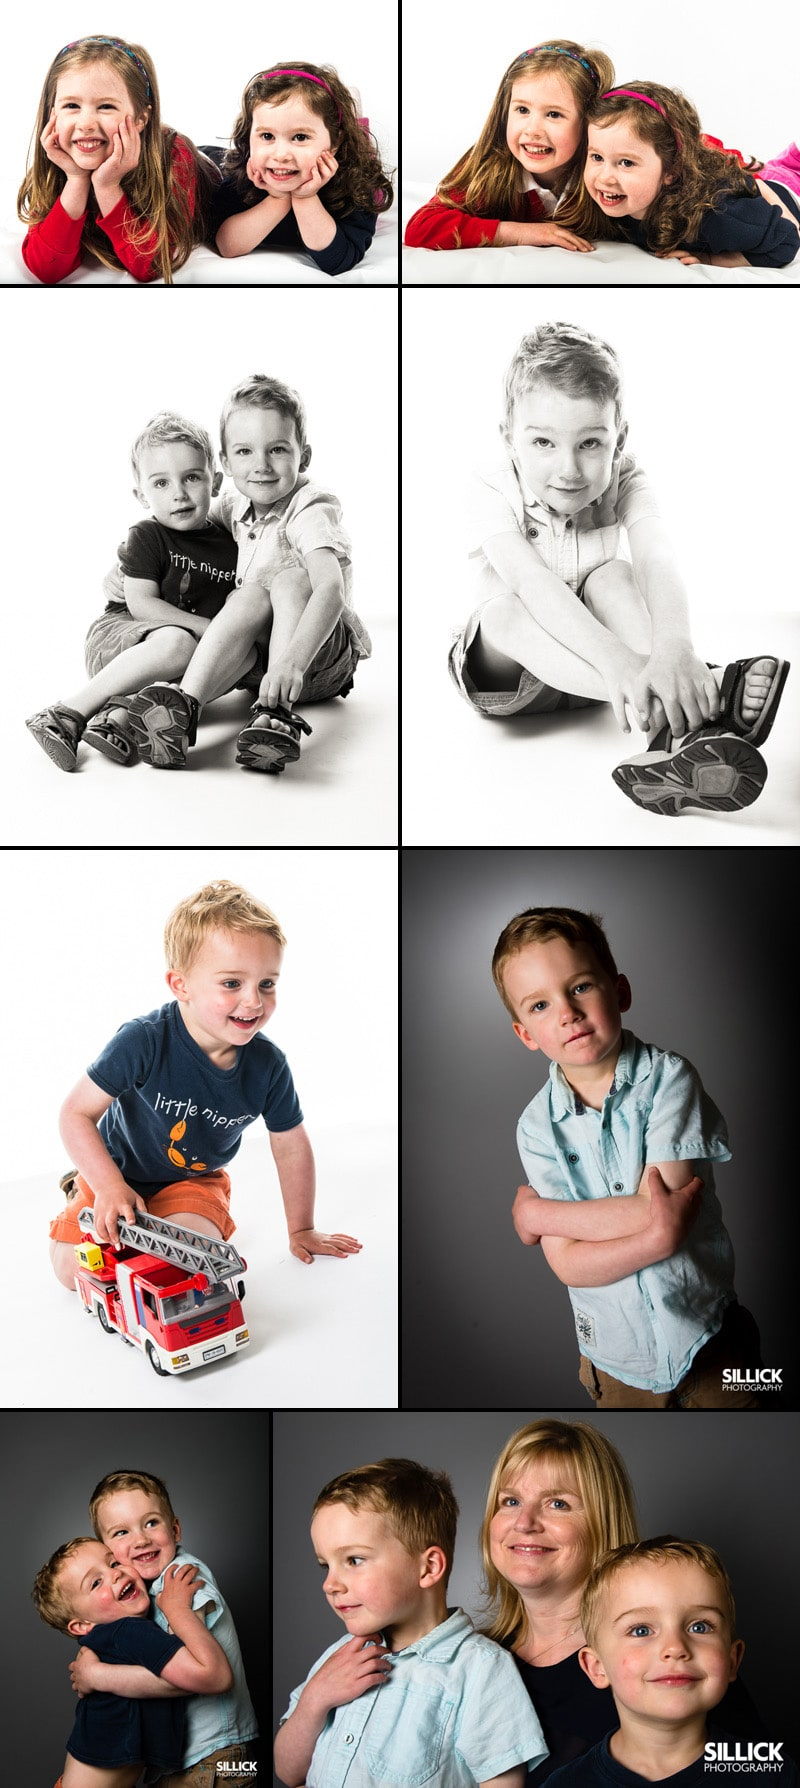 Sillick Photography studio portraits - New Milton Photographer - Hampshire photographer